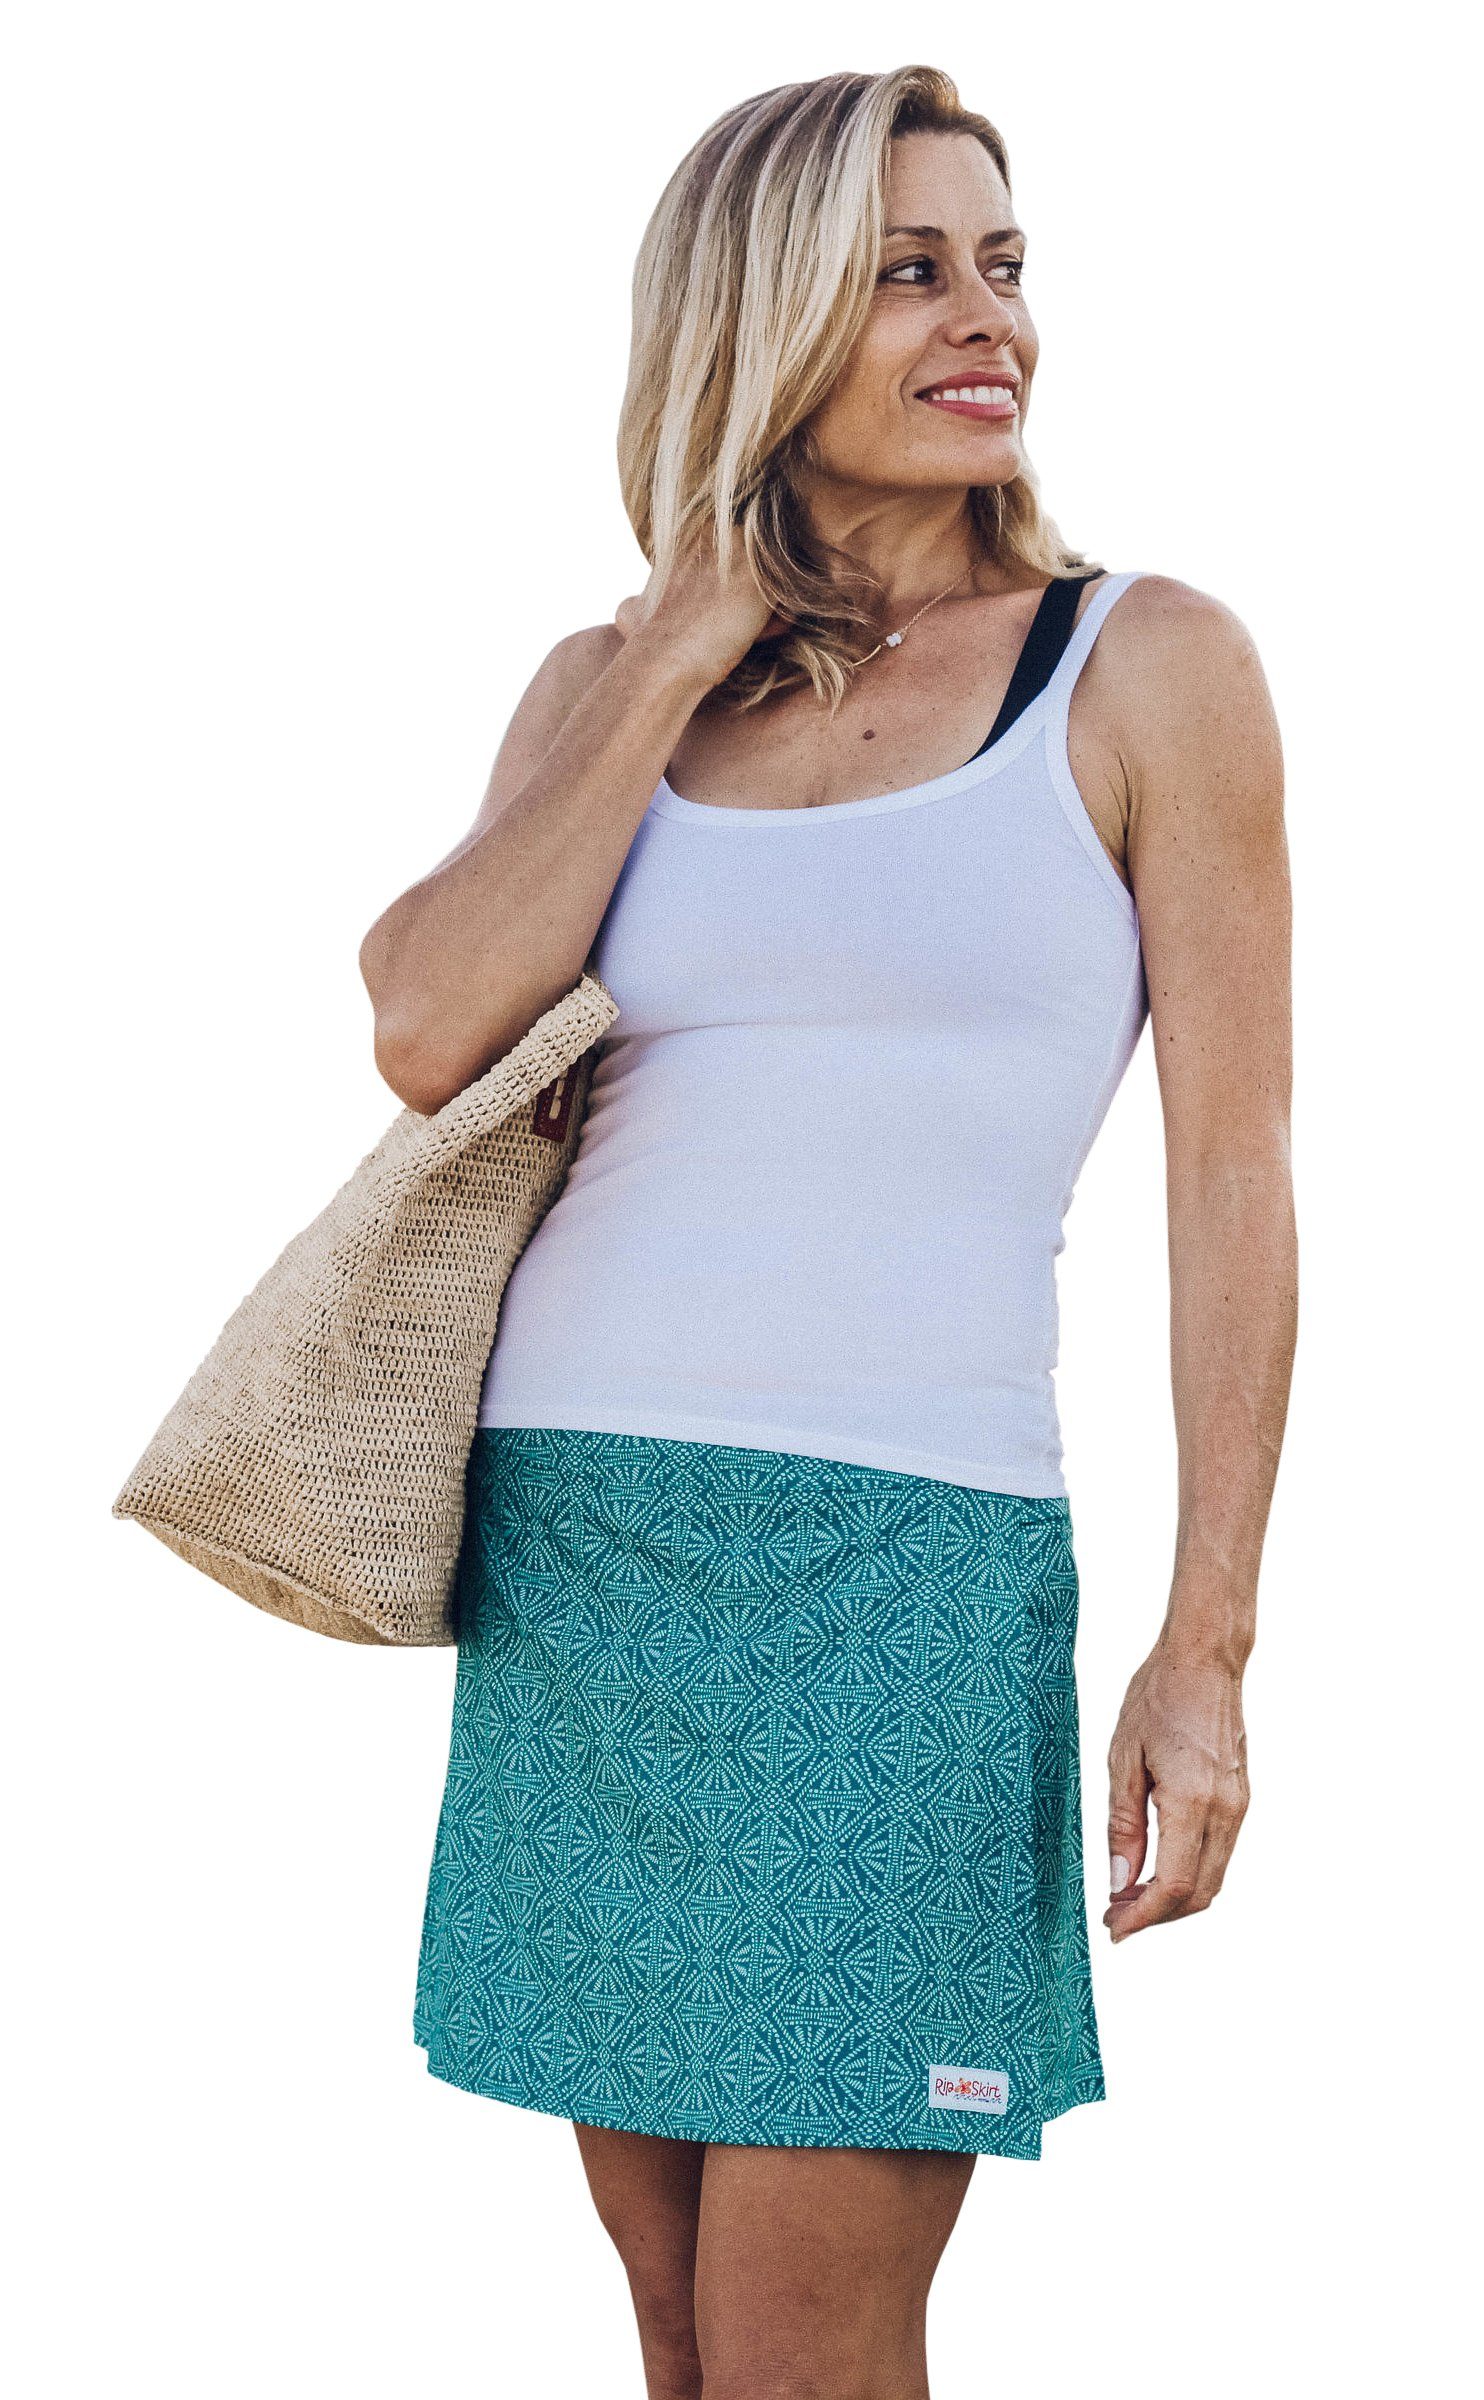 RipSkirt Hawaii Length 1 - Quick Wrap Athletic Cover-up That Multitasks as The Perfect Travel/Summer Skirt